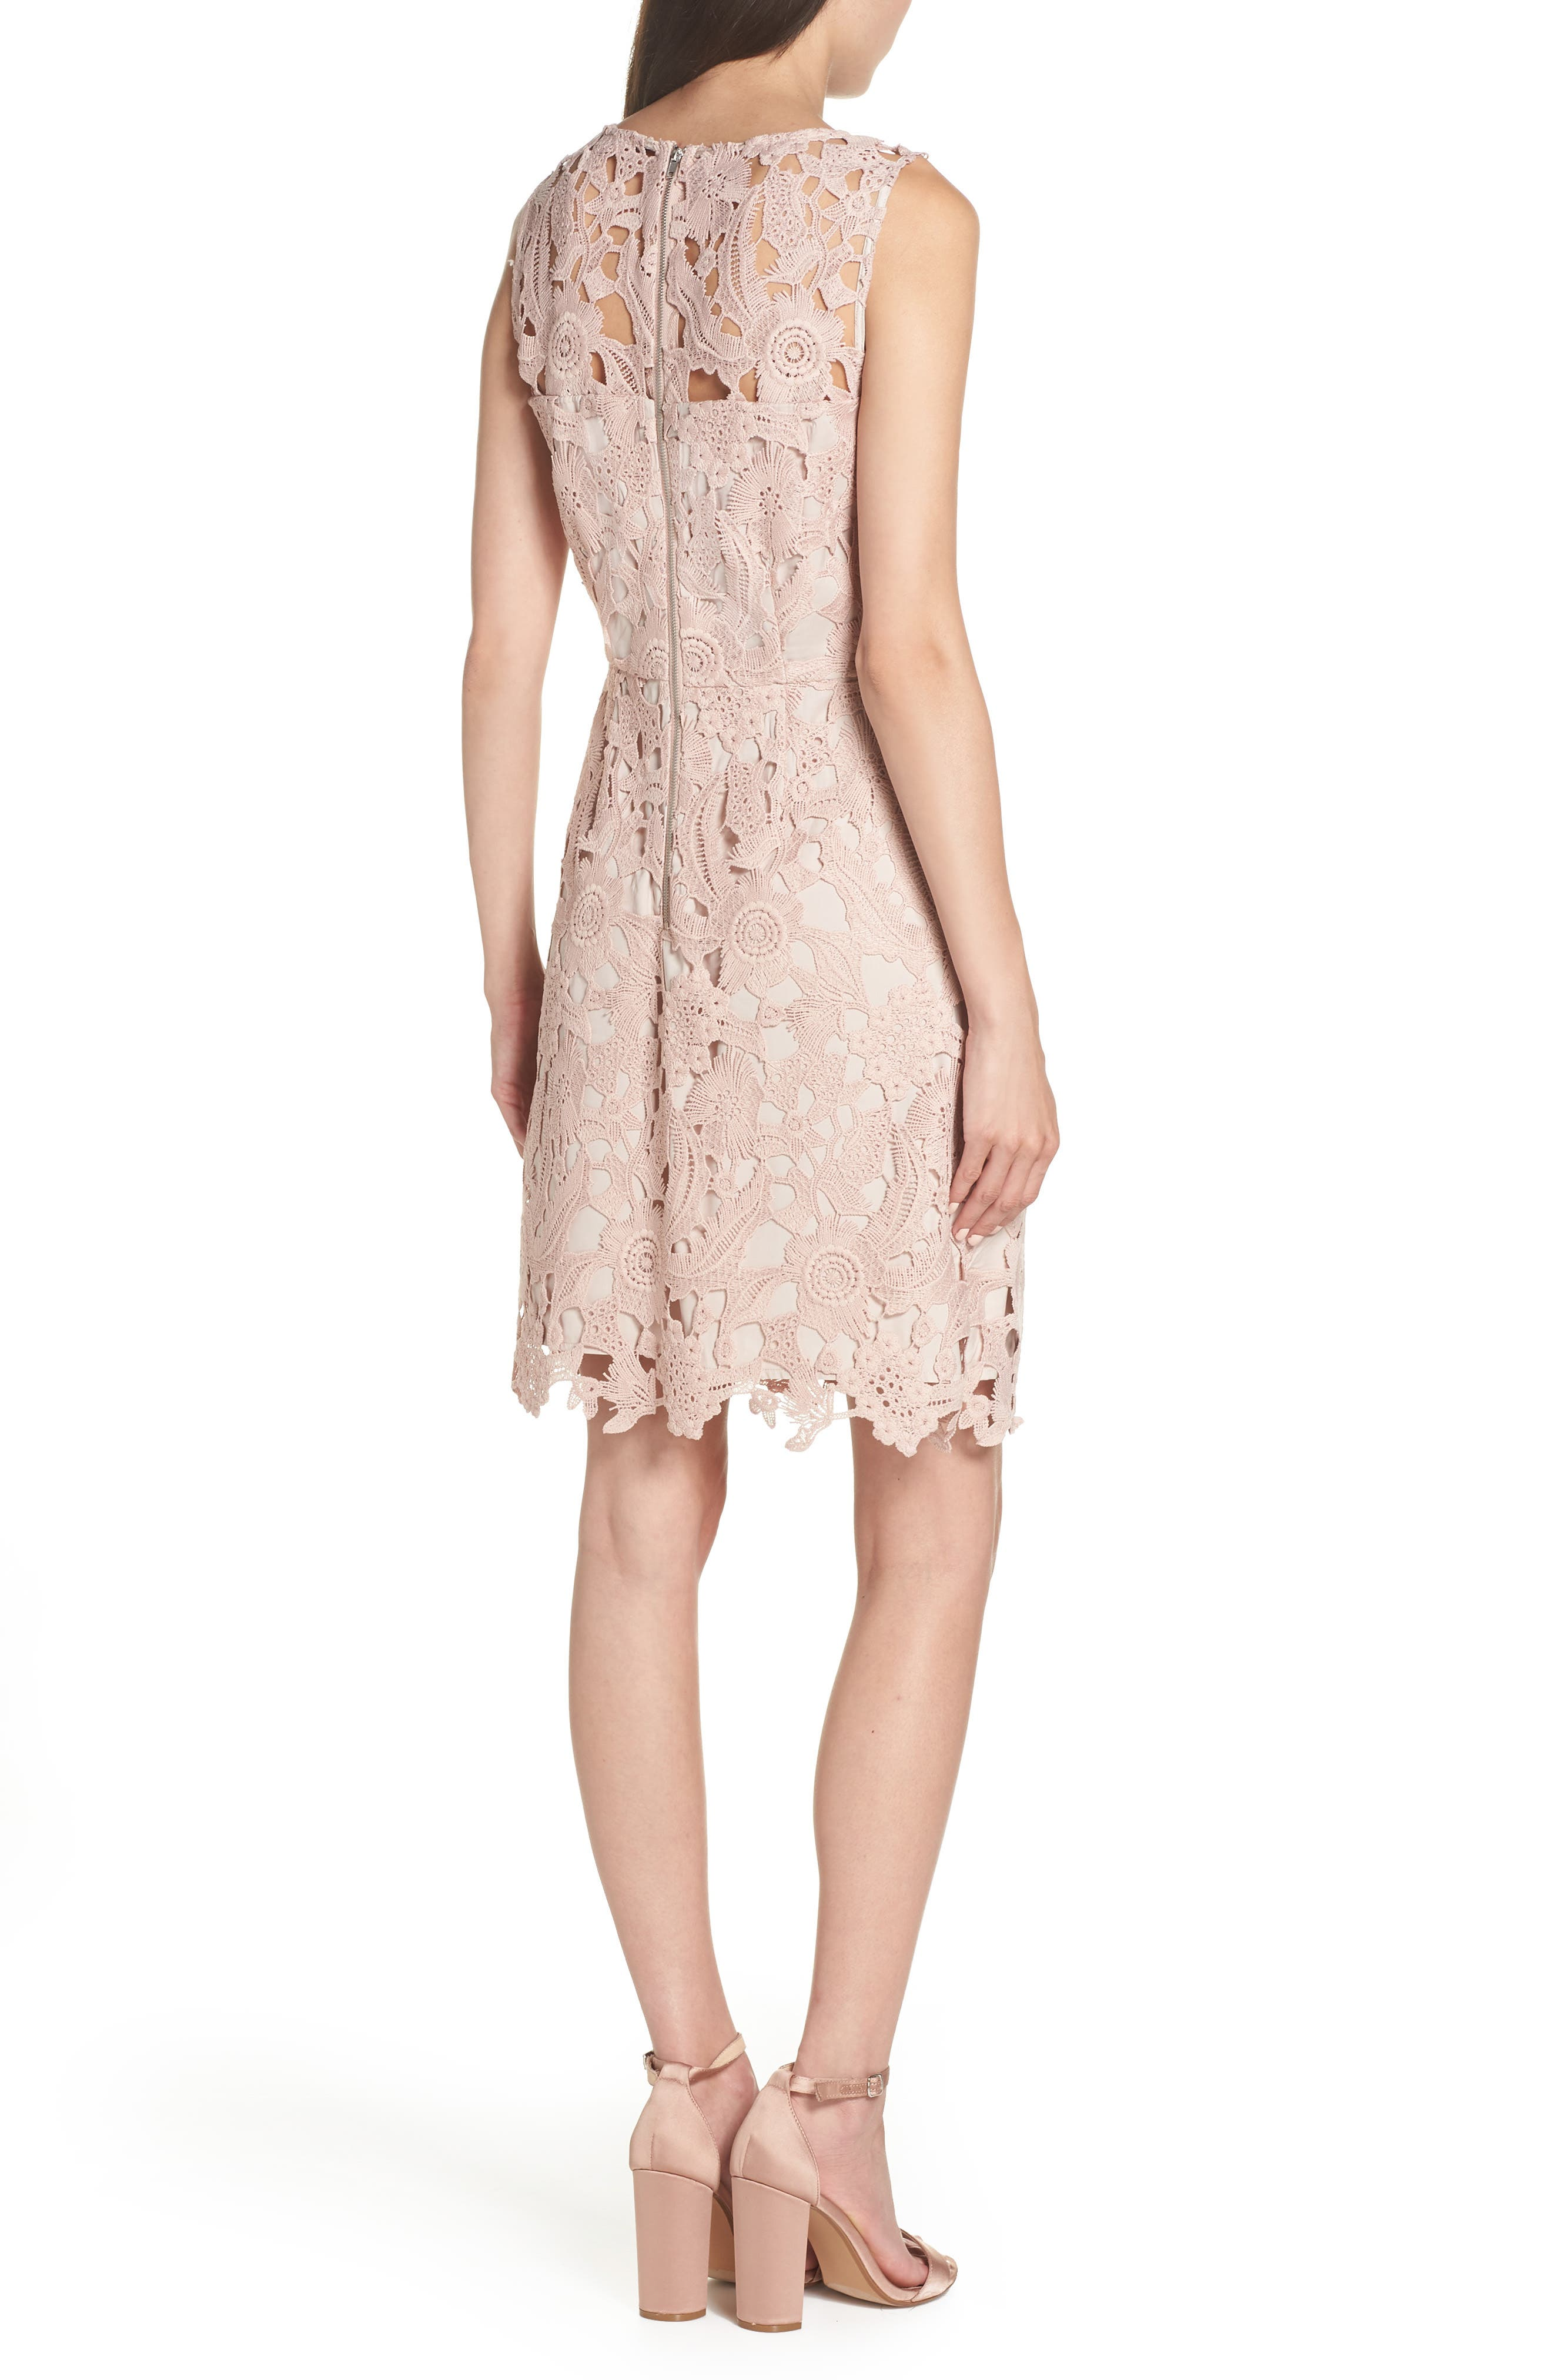 SAM EDELMAN, Lace Sheath Dress, Alternate thumbnail 2, color, BLUSH